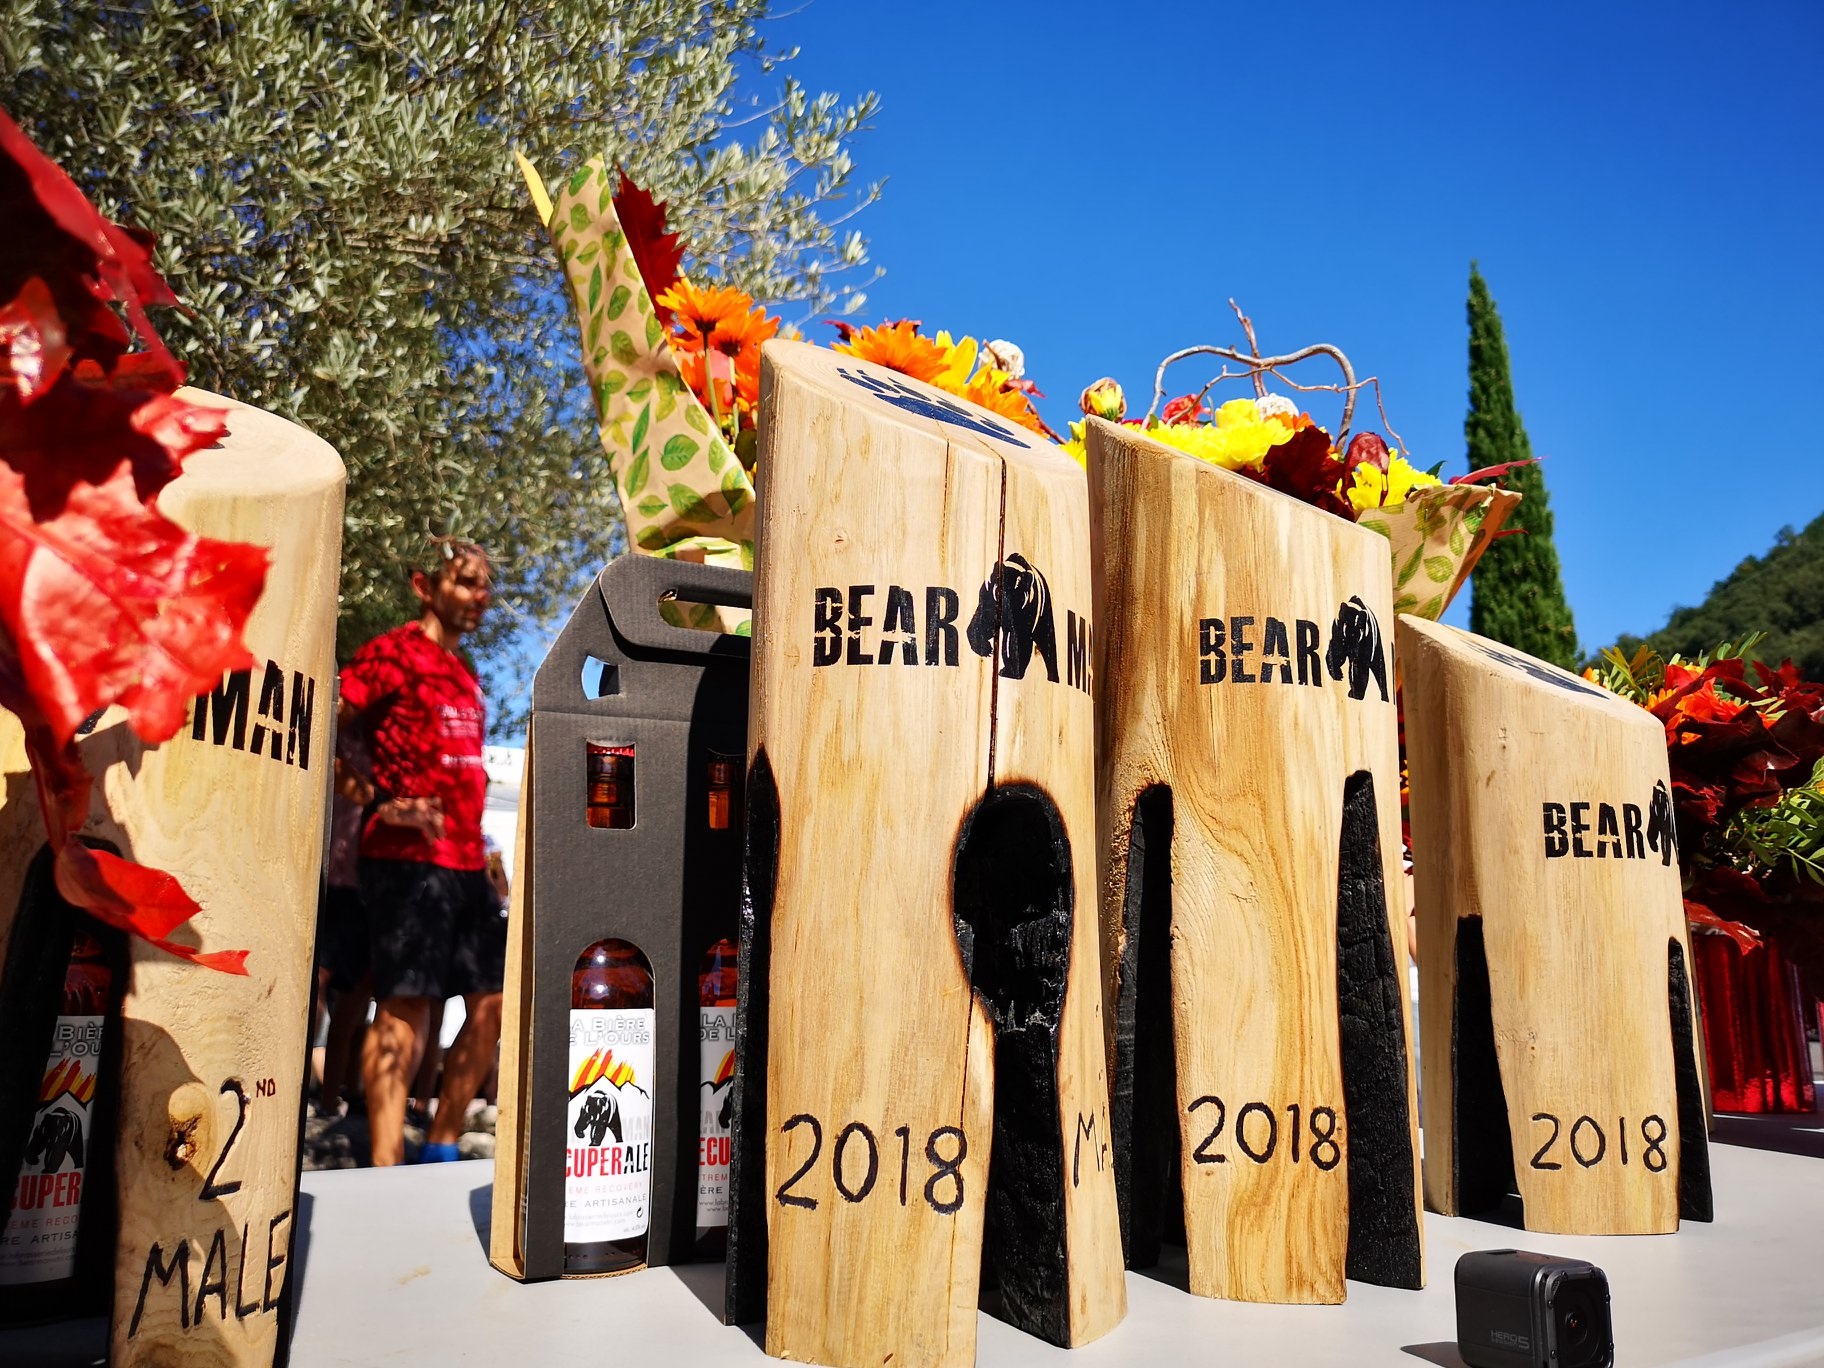 BEARMAN 2018 trophies